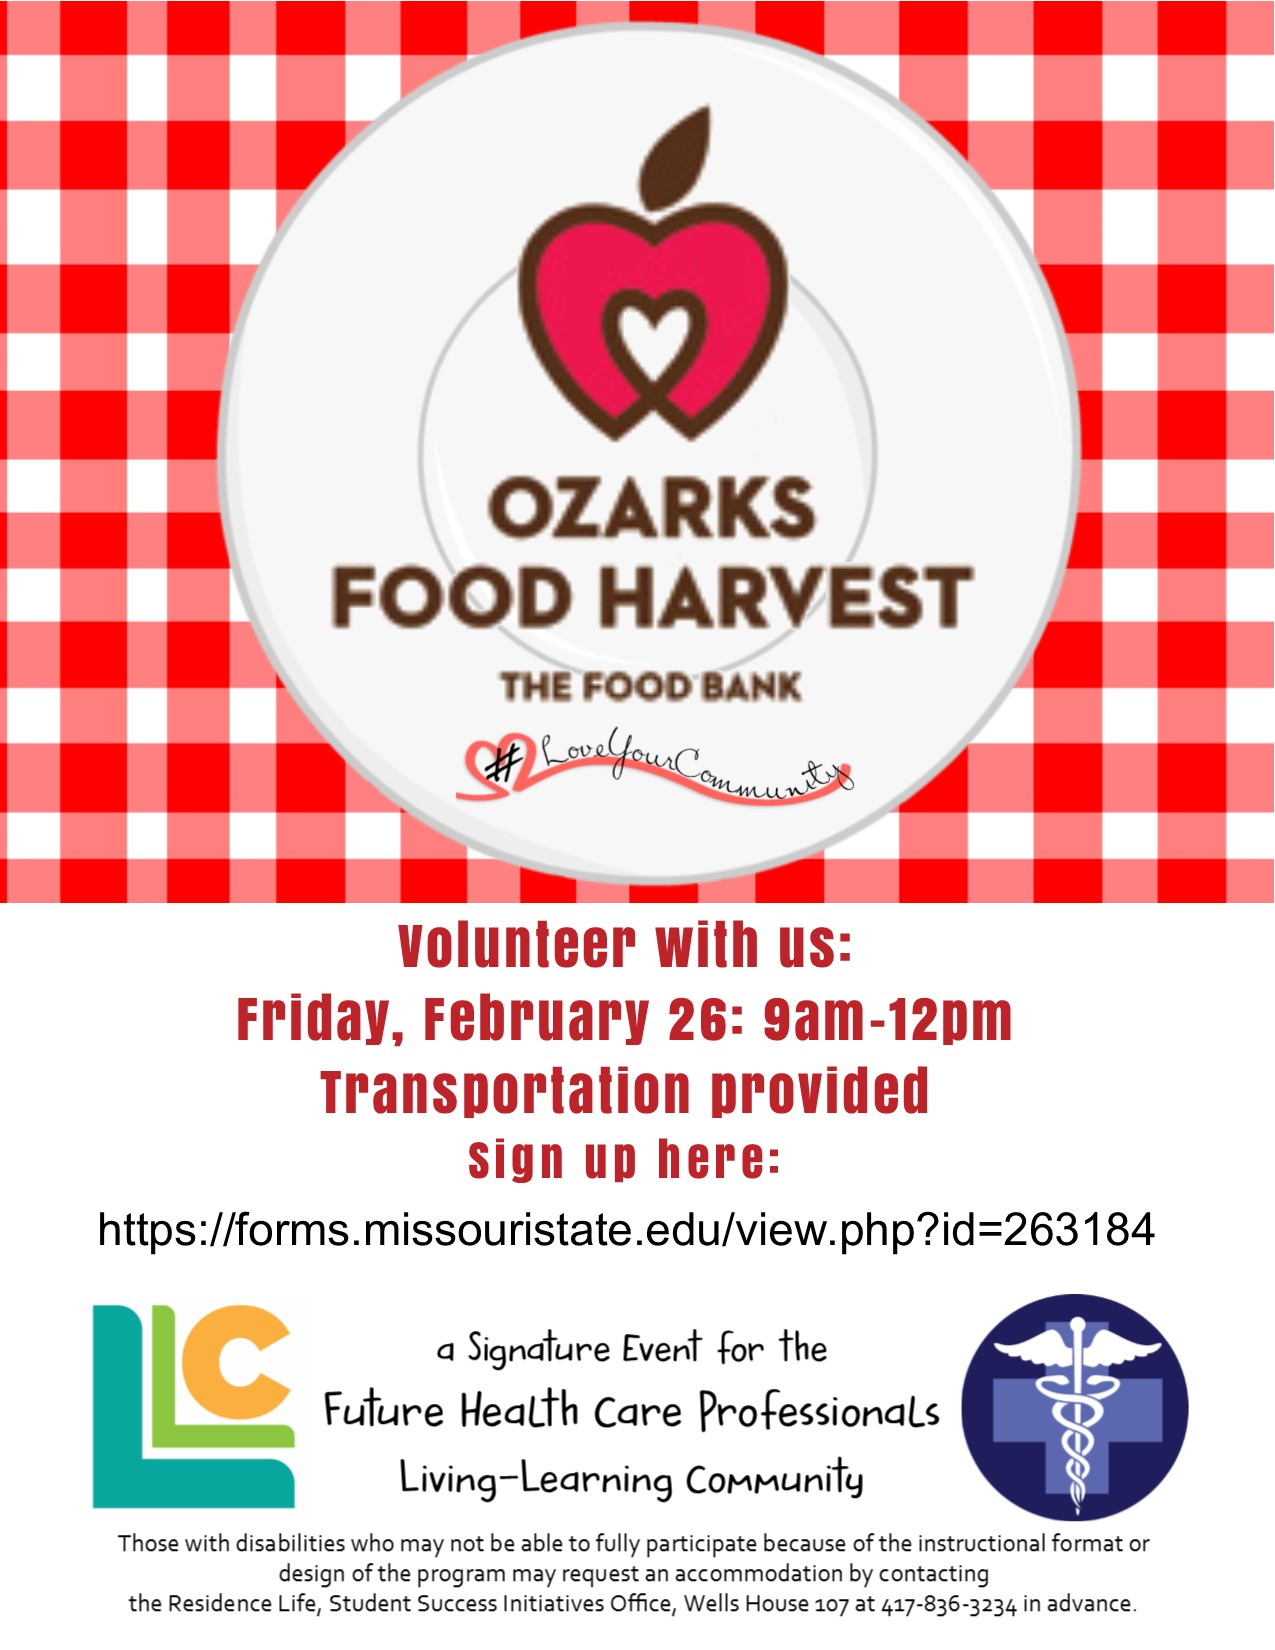 Future Health Care Professionals: Ozarks Food Harvest Volunteer Opportunity!